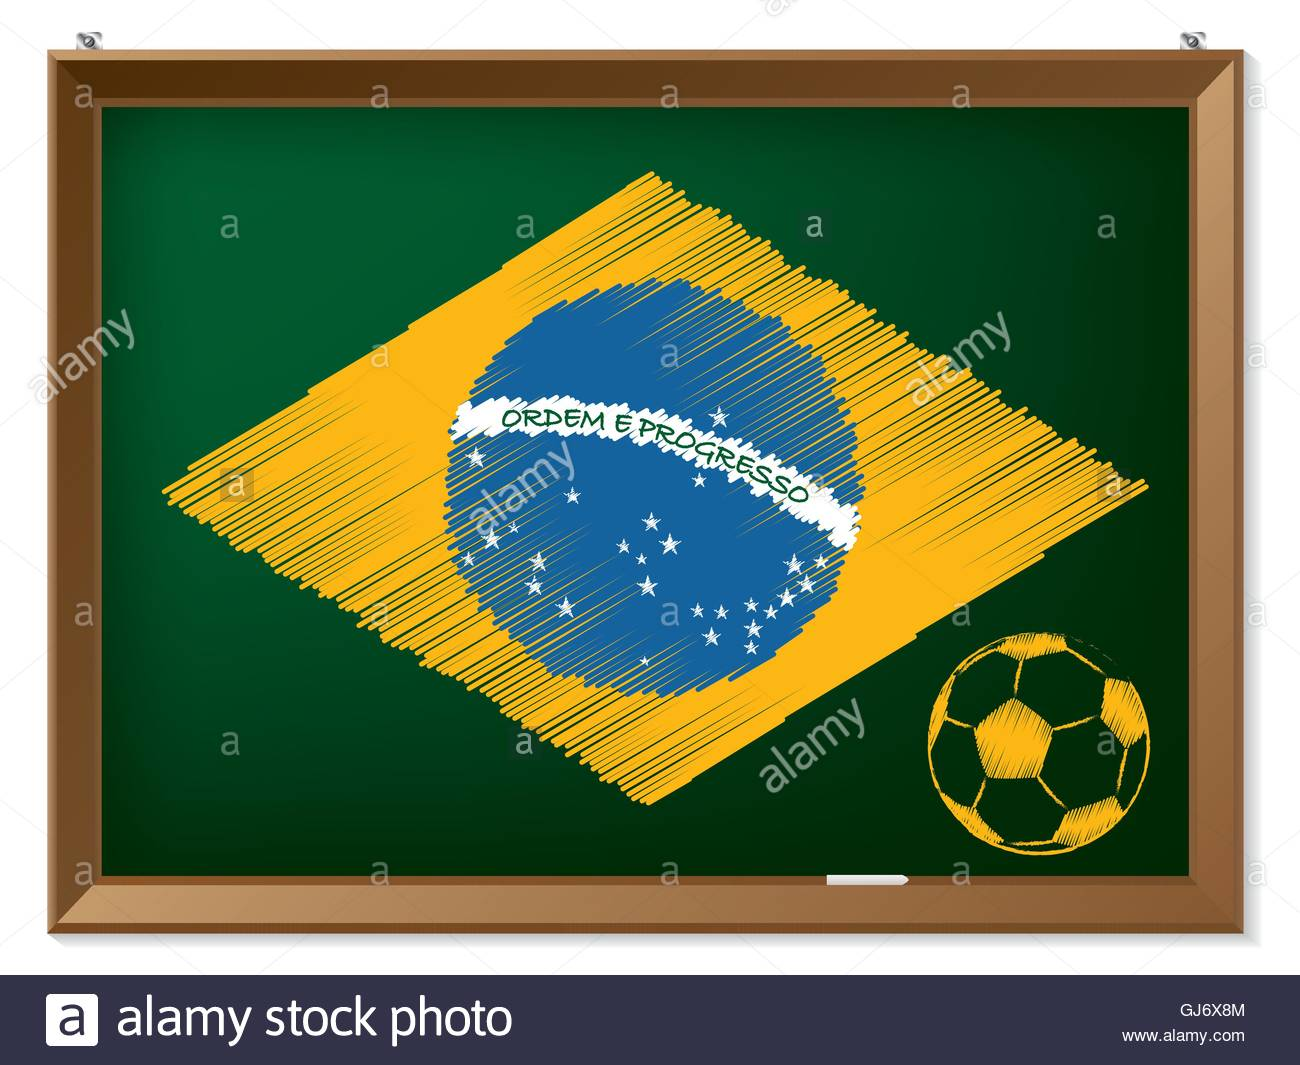 Brasil flag and soccerbal on chalkboard - Stock Image